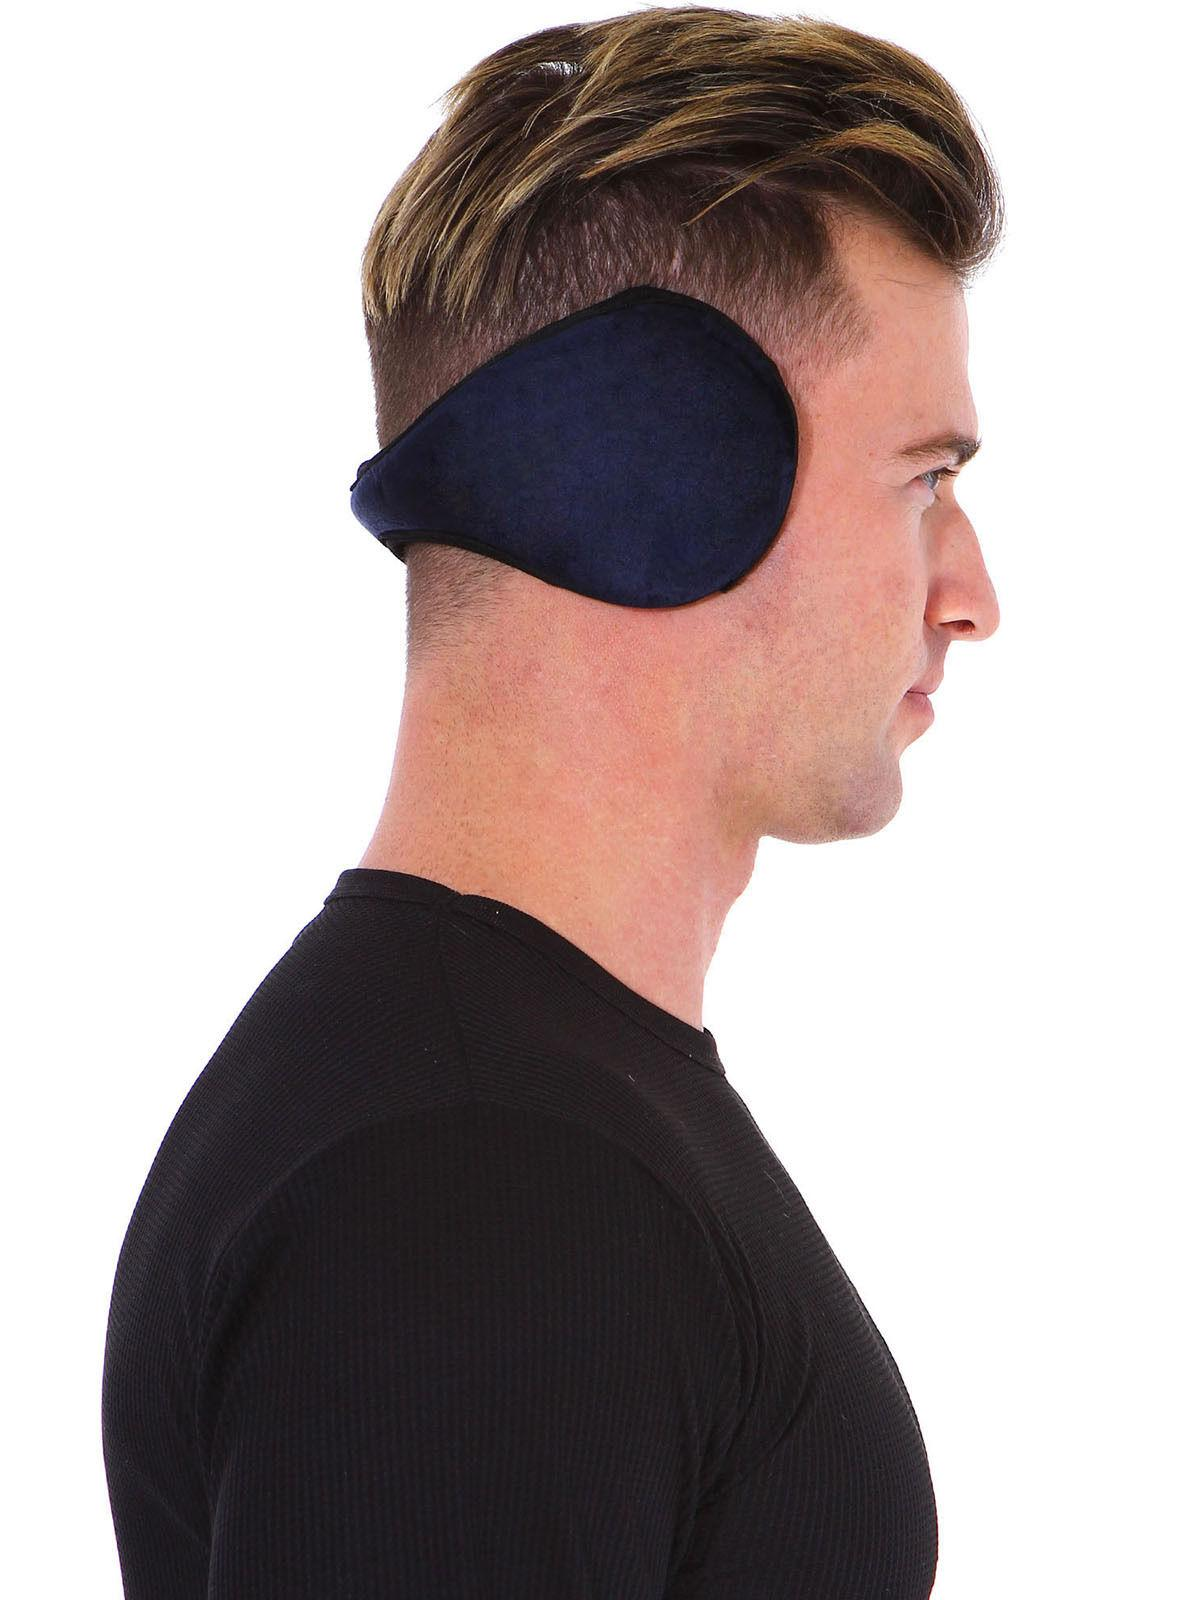 men winter warm ear warmers flexible earmuffs